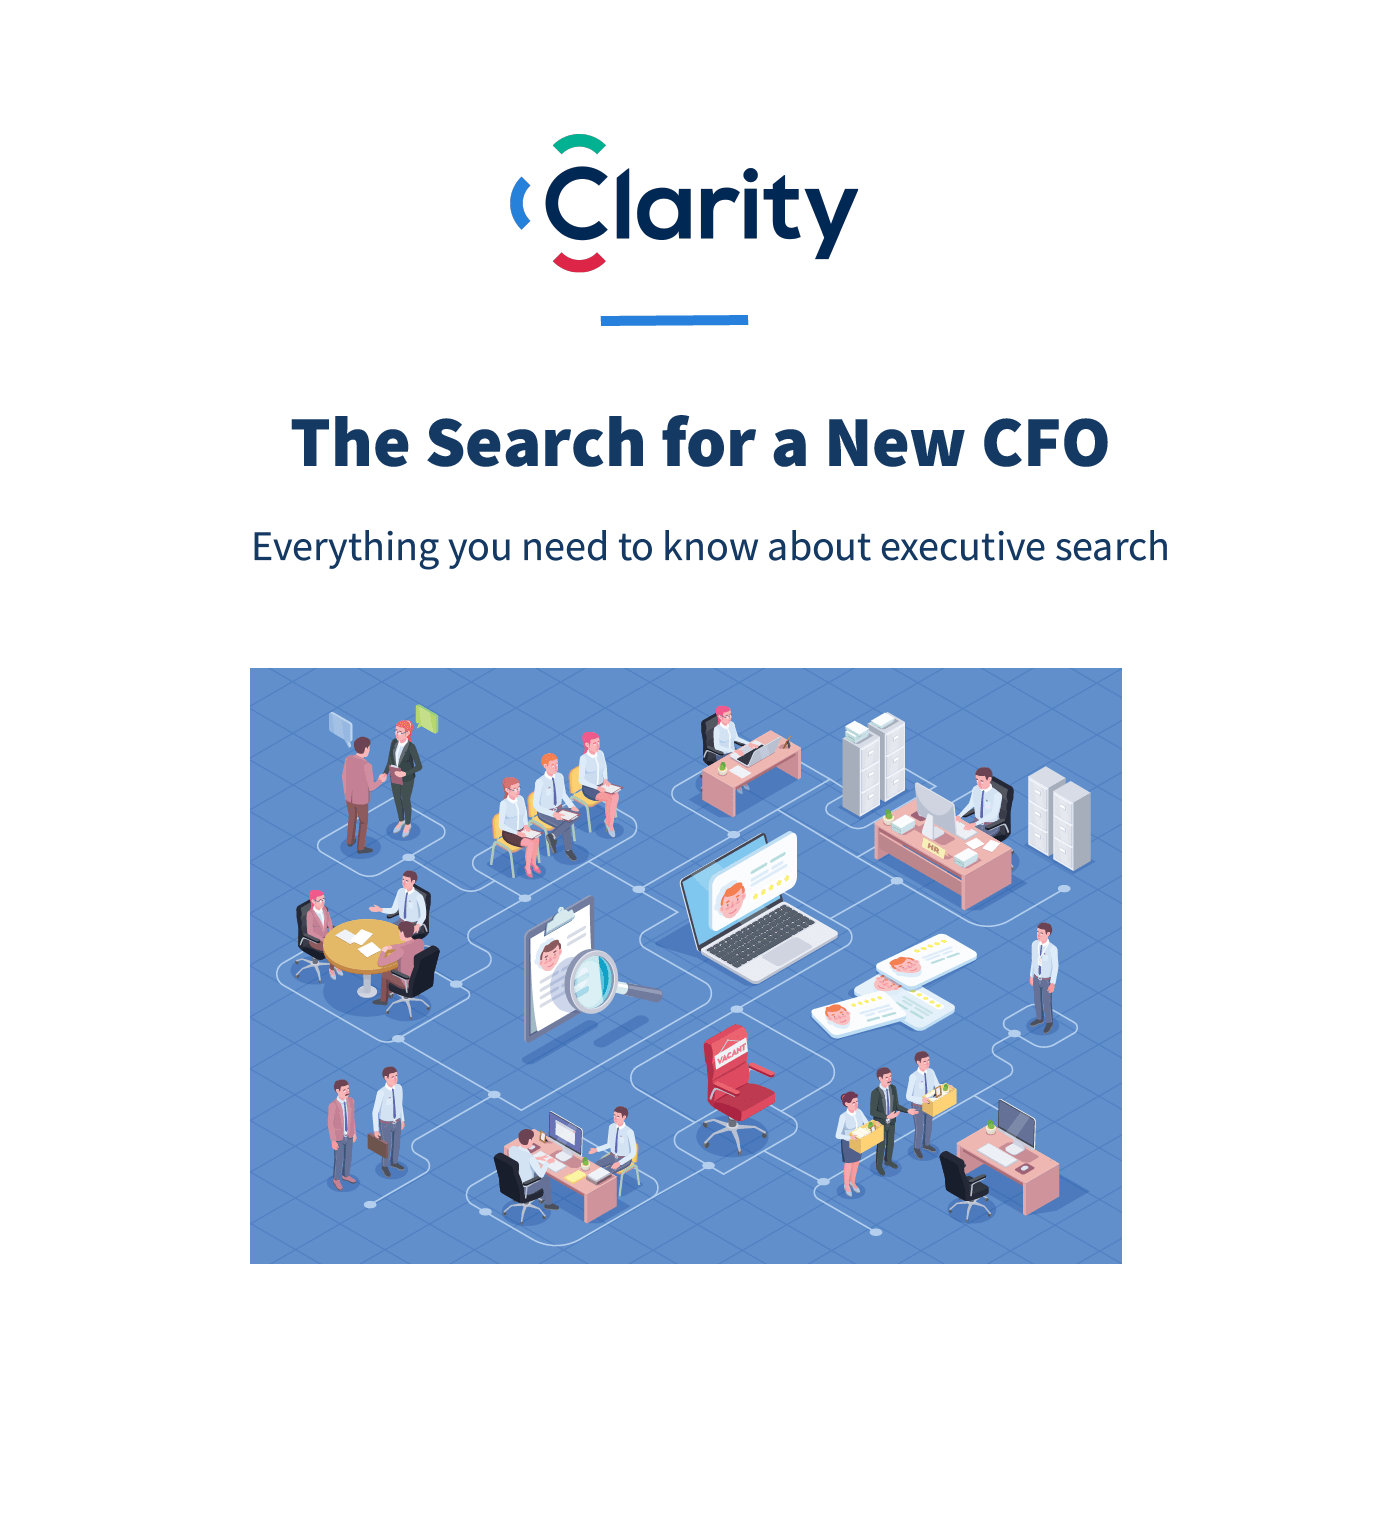 The Search for a New CFO